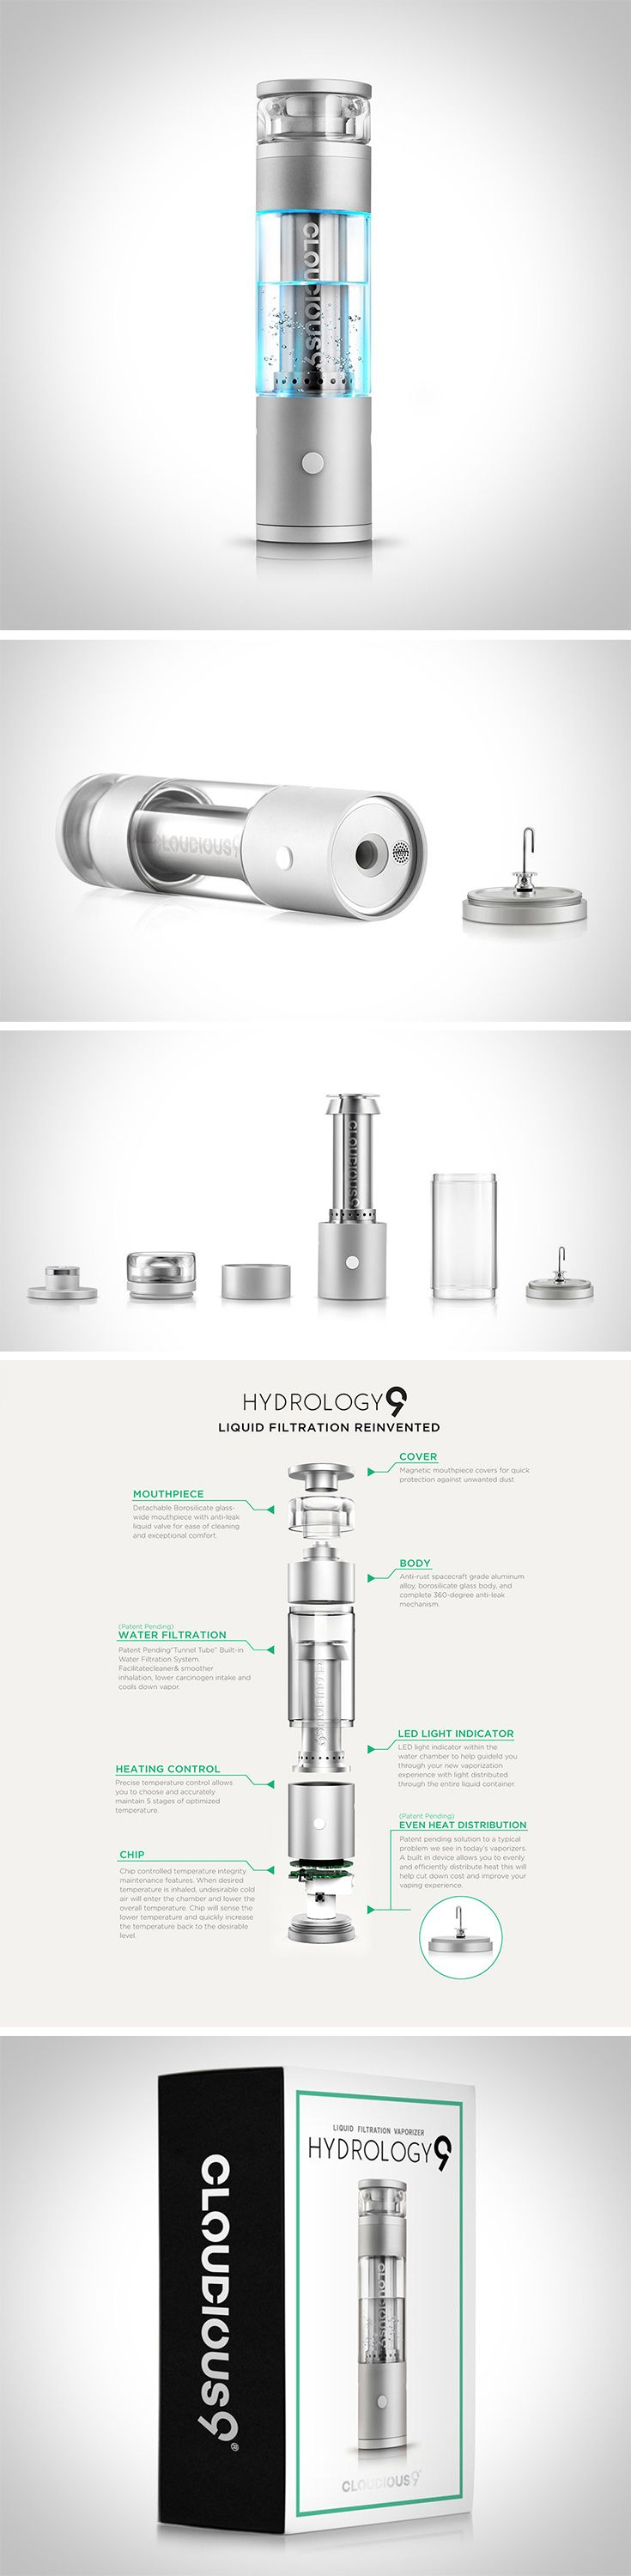 """As sick as this vaporizer looks, what sets it apart is unparalleled water filtration technology. Vaping is all about smoothness, and the addition of water enhanced the sensation even more. Hydrology9's patent pending """"tunnel-tube"""" system allows an unobstructed flow while keeping it leakproof and aesthetically seamless."""